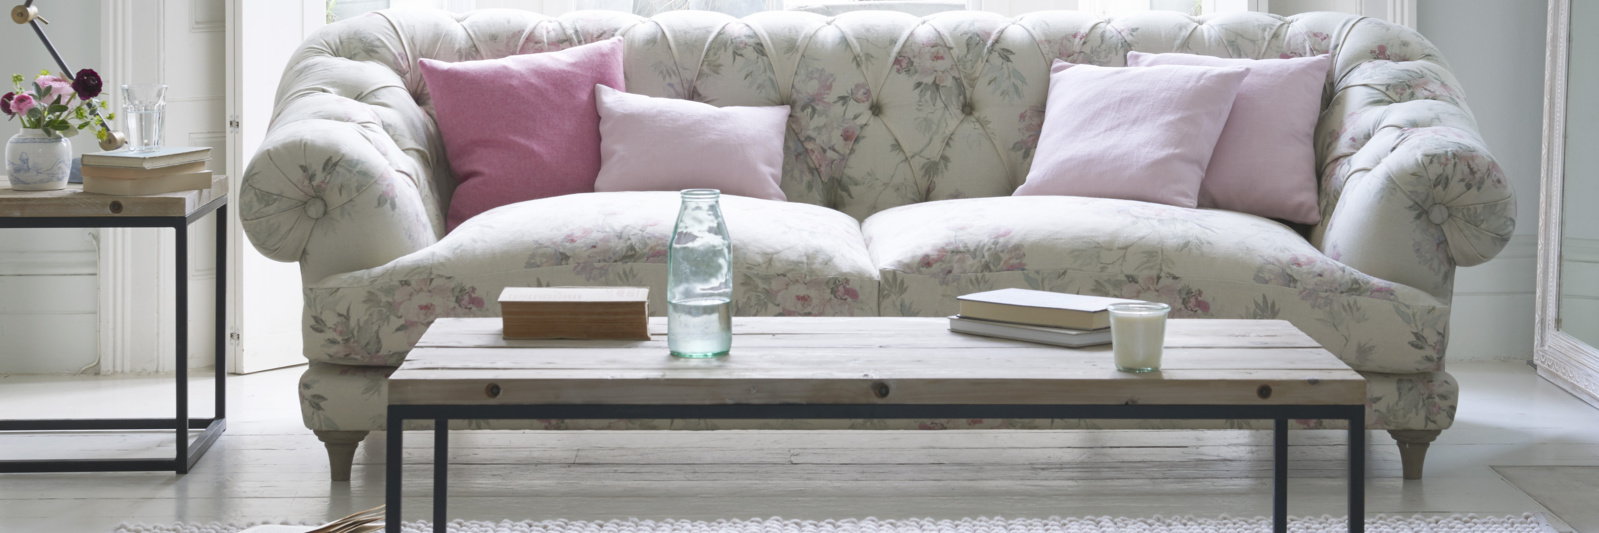 Bagsie chesterfield sofa in Vintage Rose linen